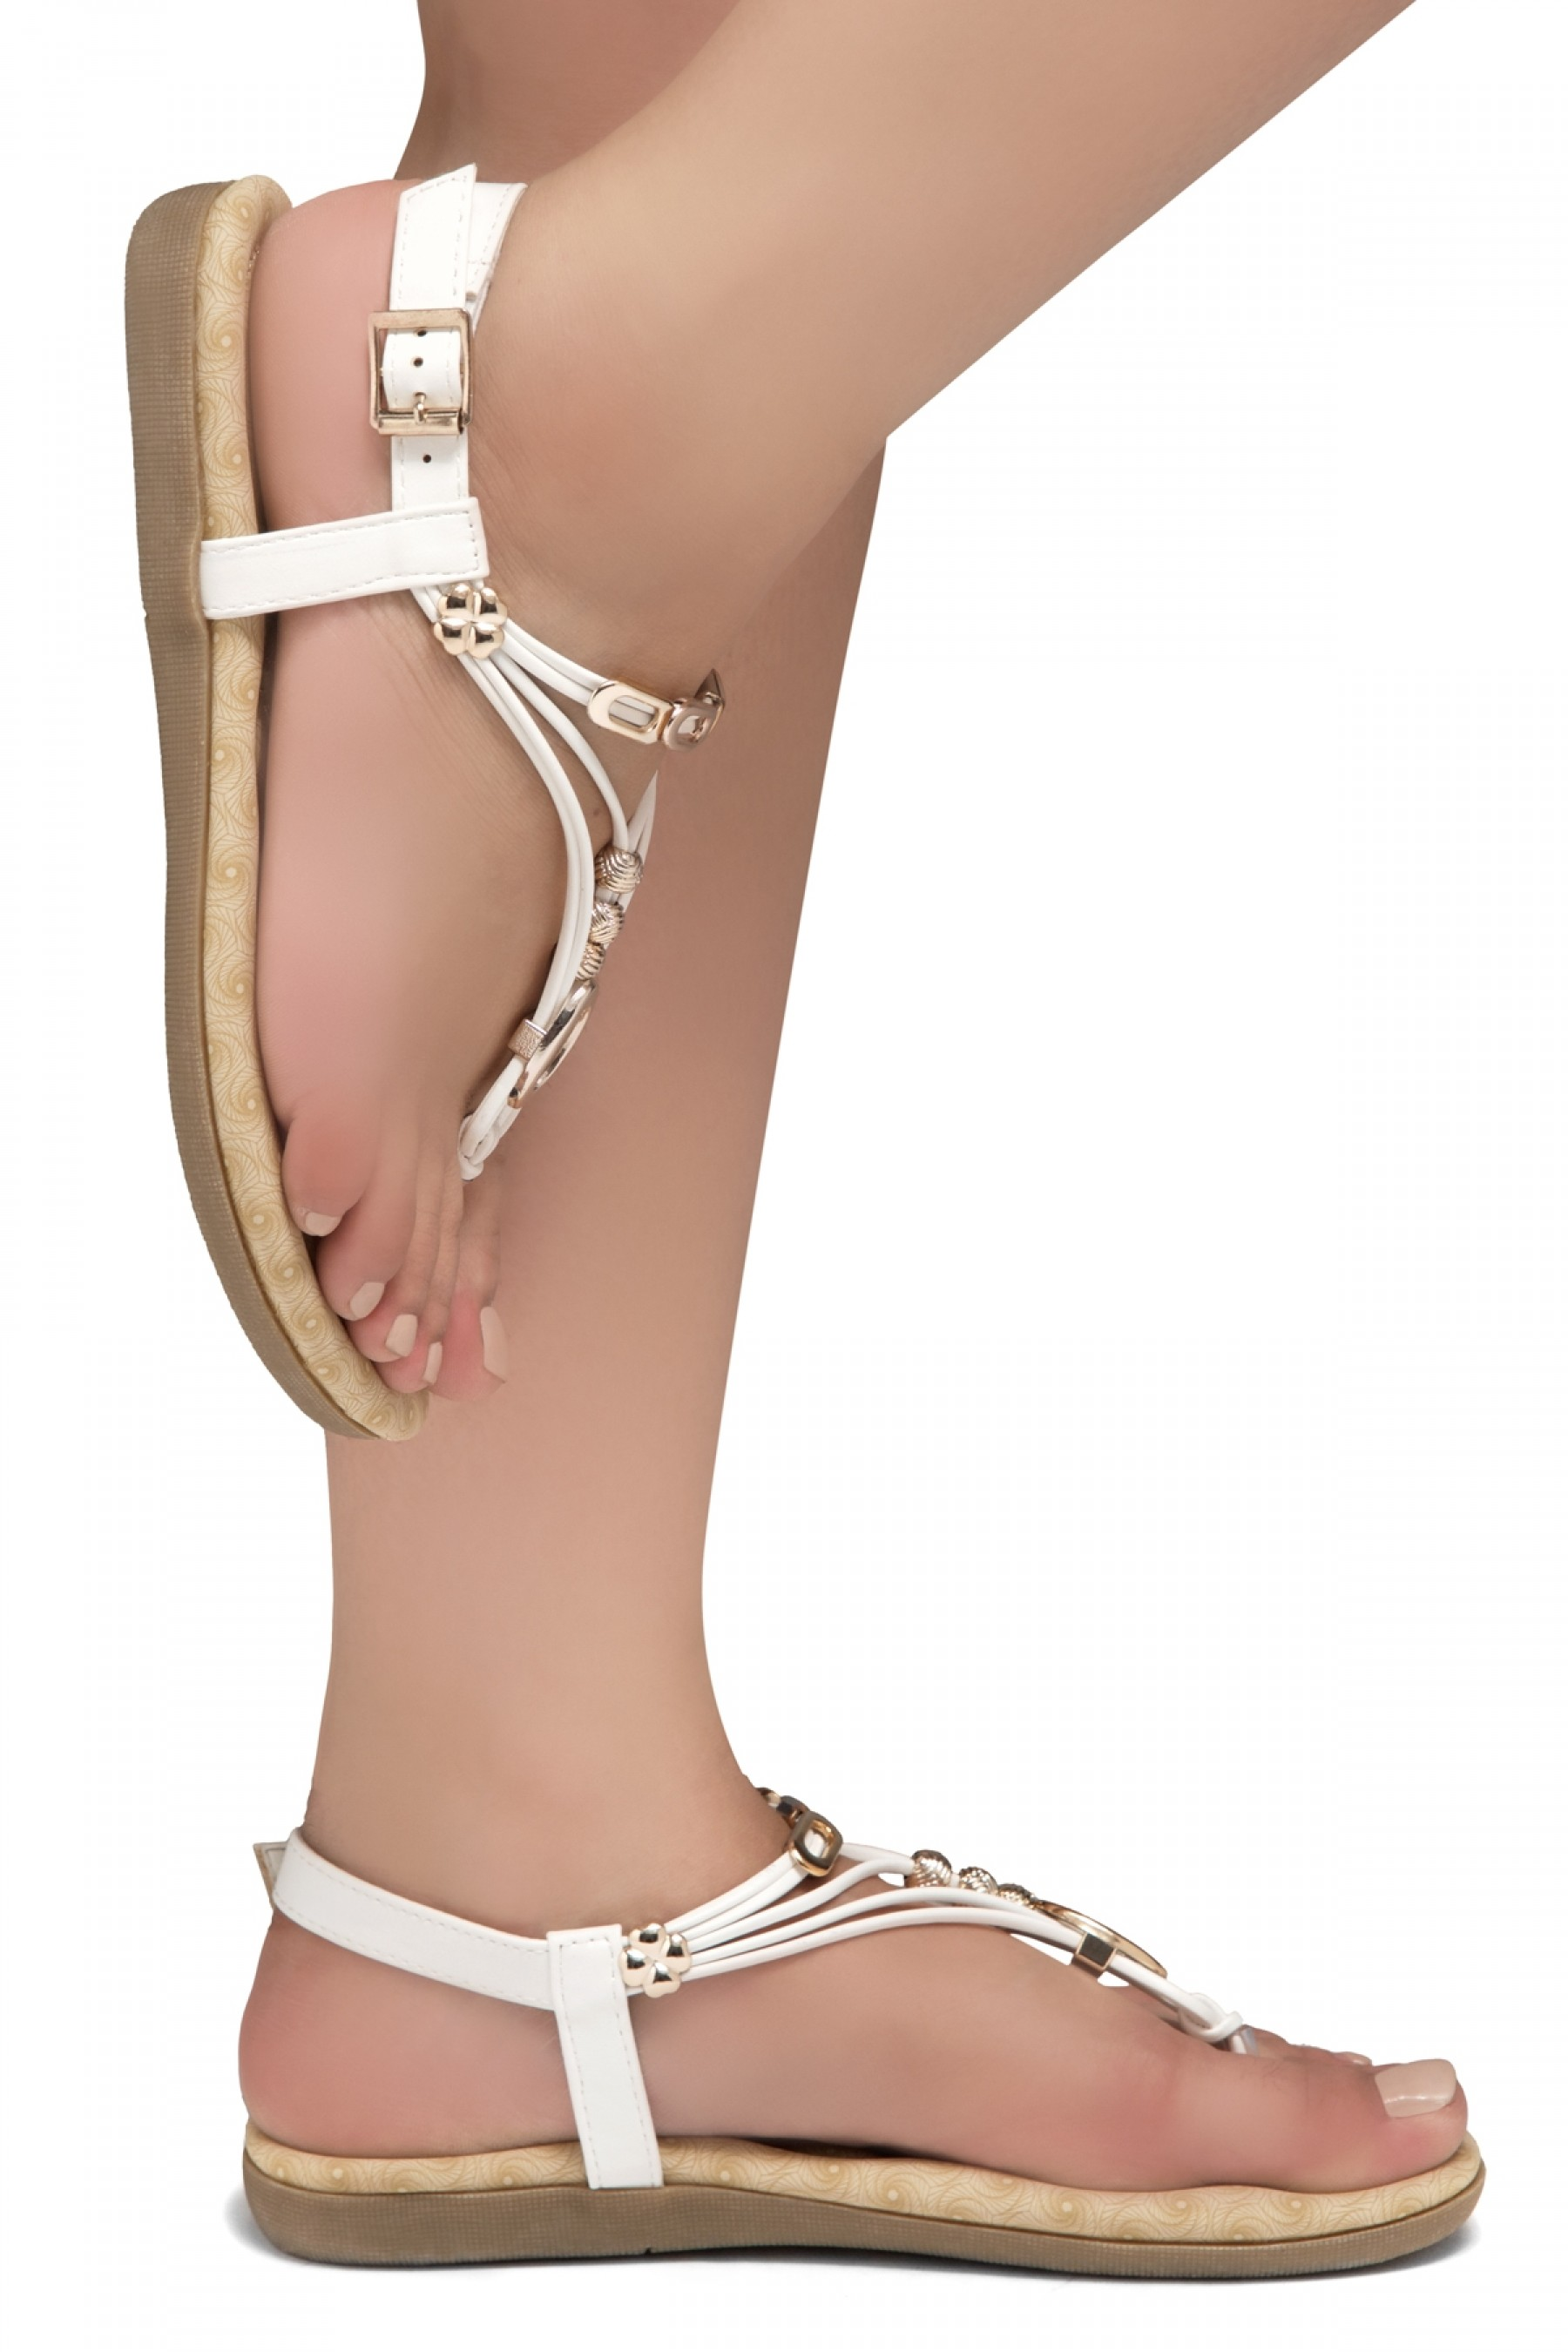 Shoe Land Issy-Manmade Women's Flat Sandal with Flirty Metallic Accents (White)